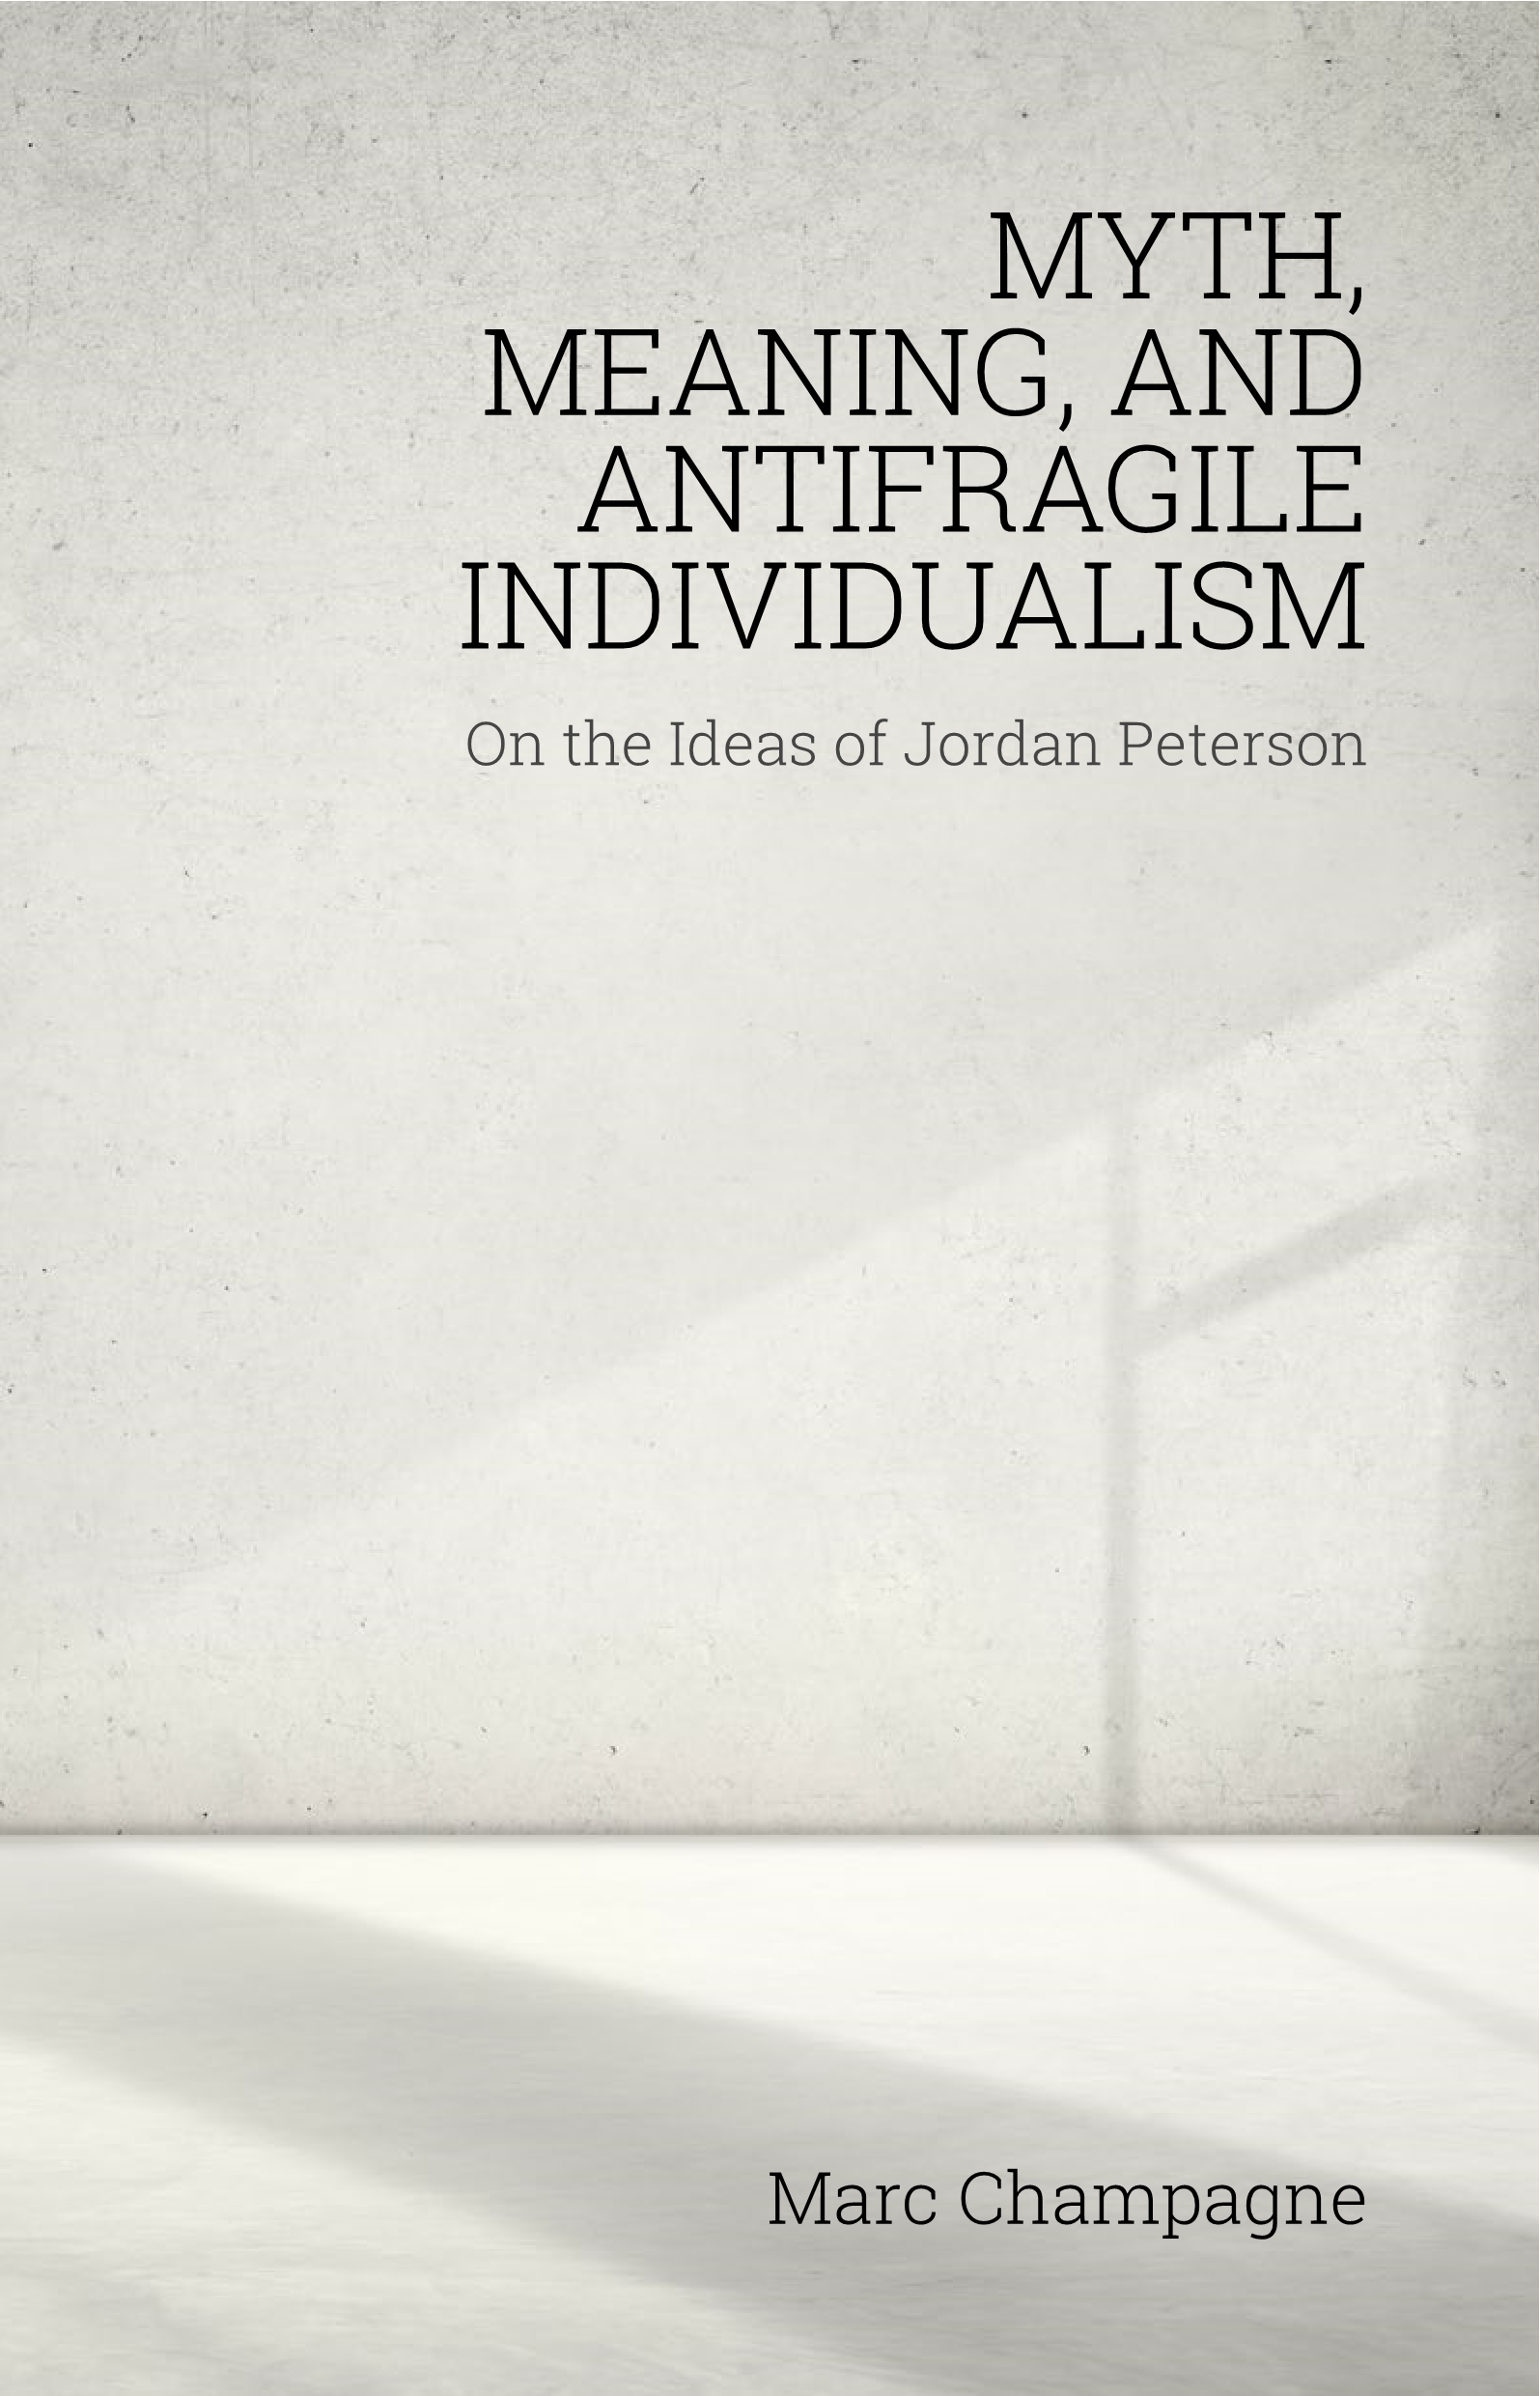 Myth, Meaning, and Antifragile Individualism